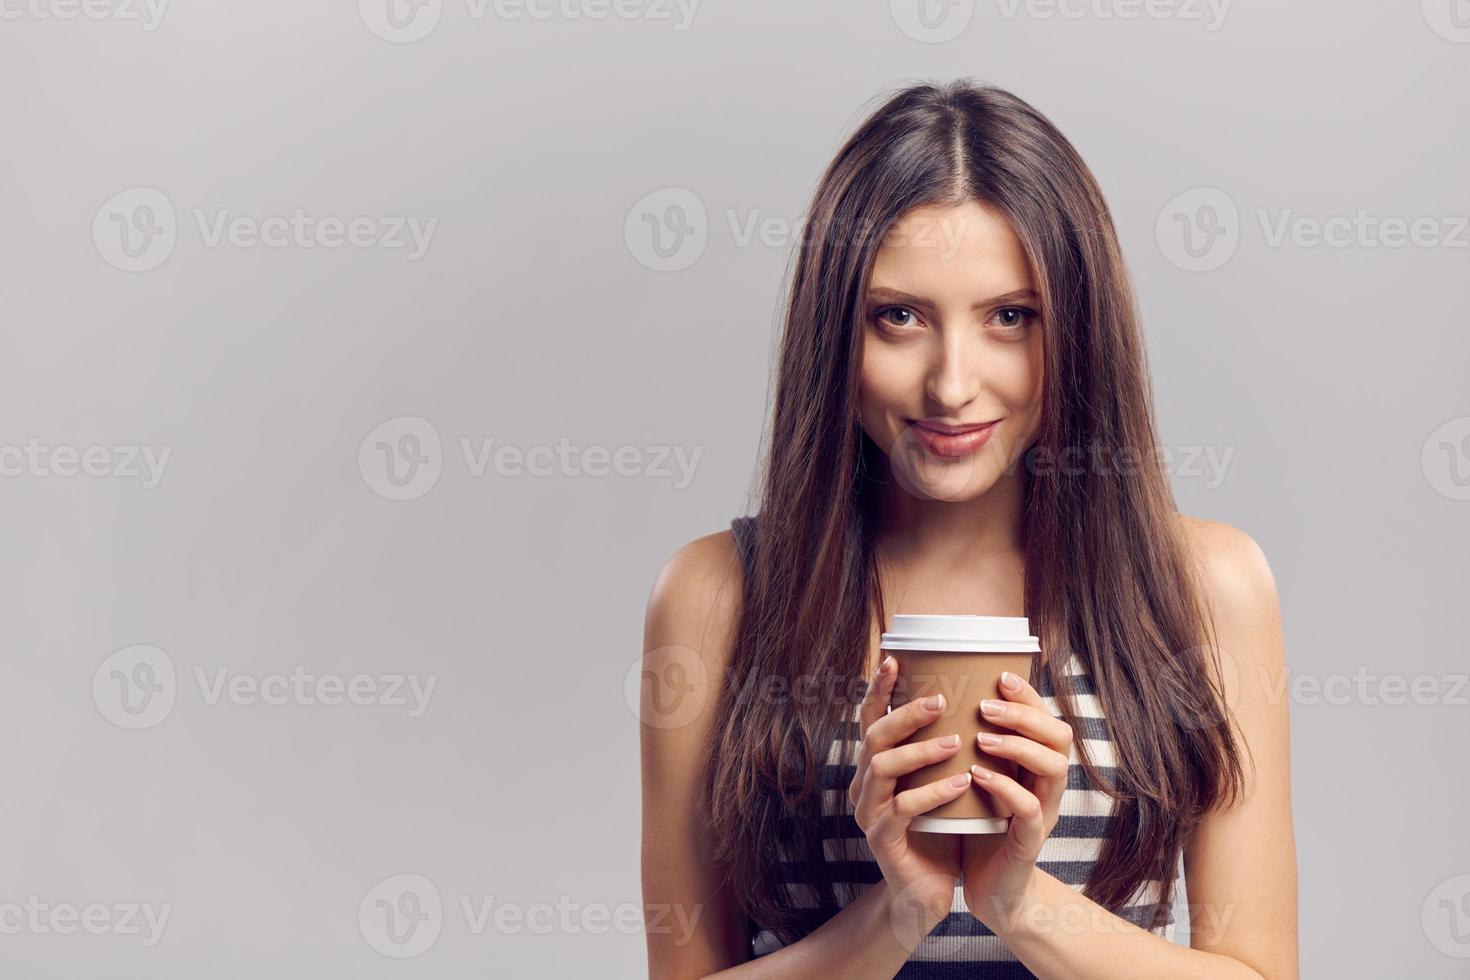 Woman drinking hot drink from disposable paper cup photo